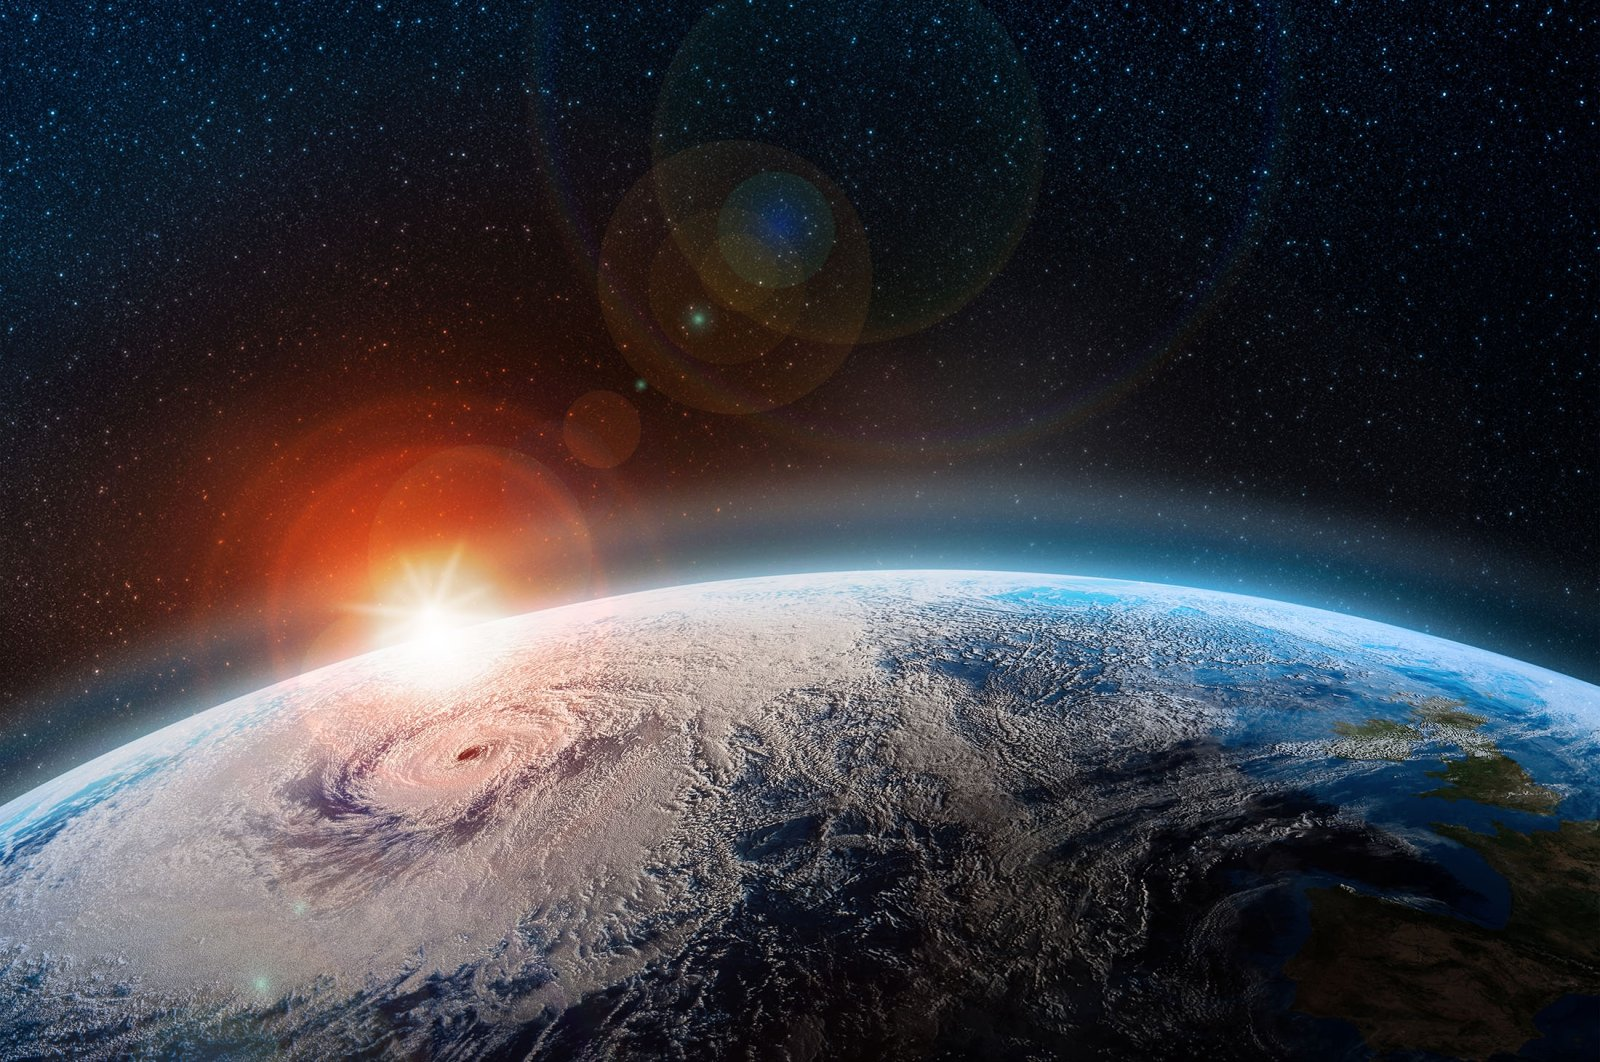 Ozone treaty prevented 'scorched Earth' climate. (Shutterstock Photo)